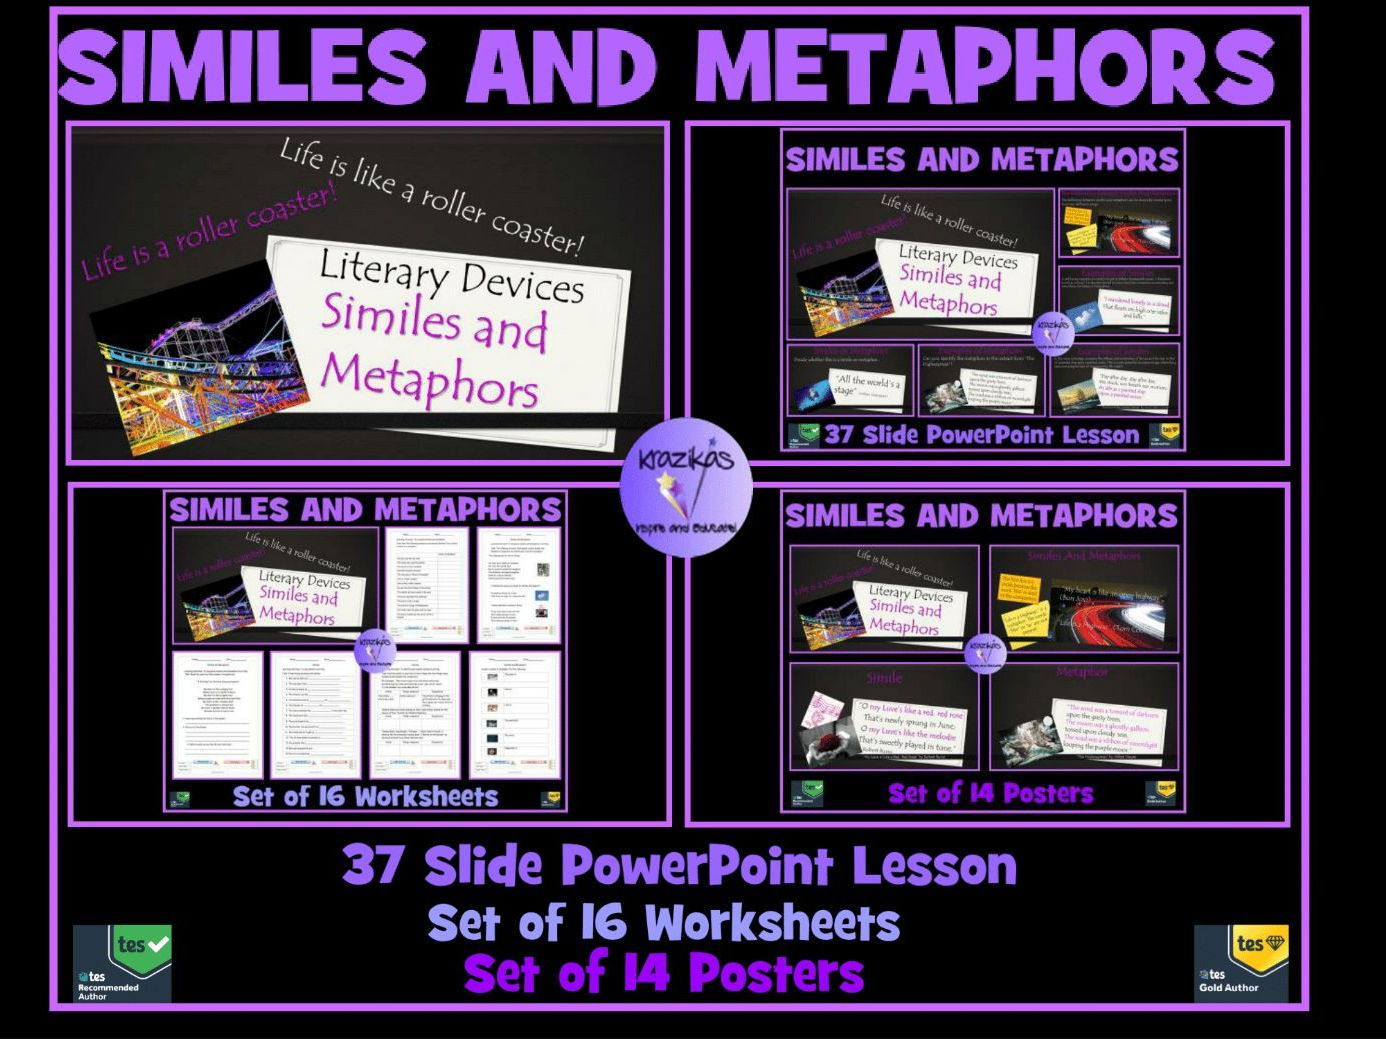 Money Worksheets For 2nd Grade Word Inspire And Educate By Krazikas  Teaching Resources  Tes Rhyming Words Cut And Paste Worksheets Excel with Holiday Worksheets Word Similes And Metaphors Bundle  Powerpoint Lesson Set Of  Worksheets Set  Of  Maths Worksheets For Primary 1 Pdf